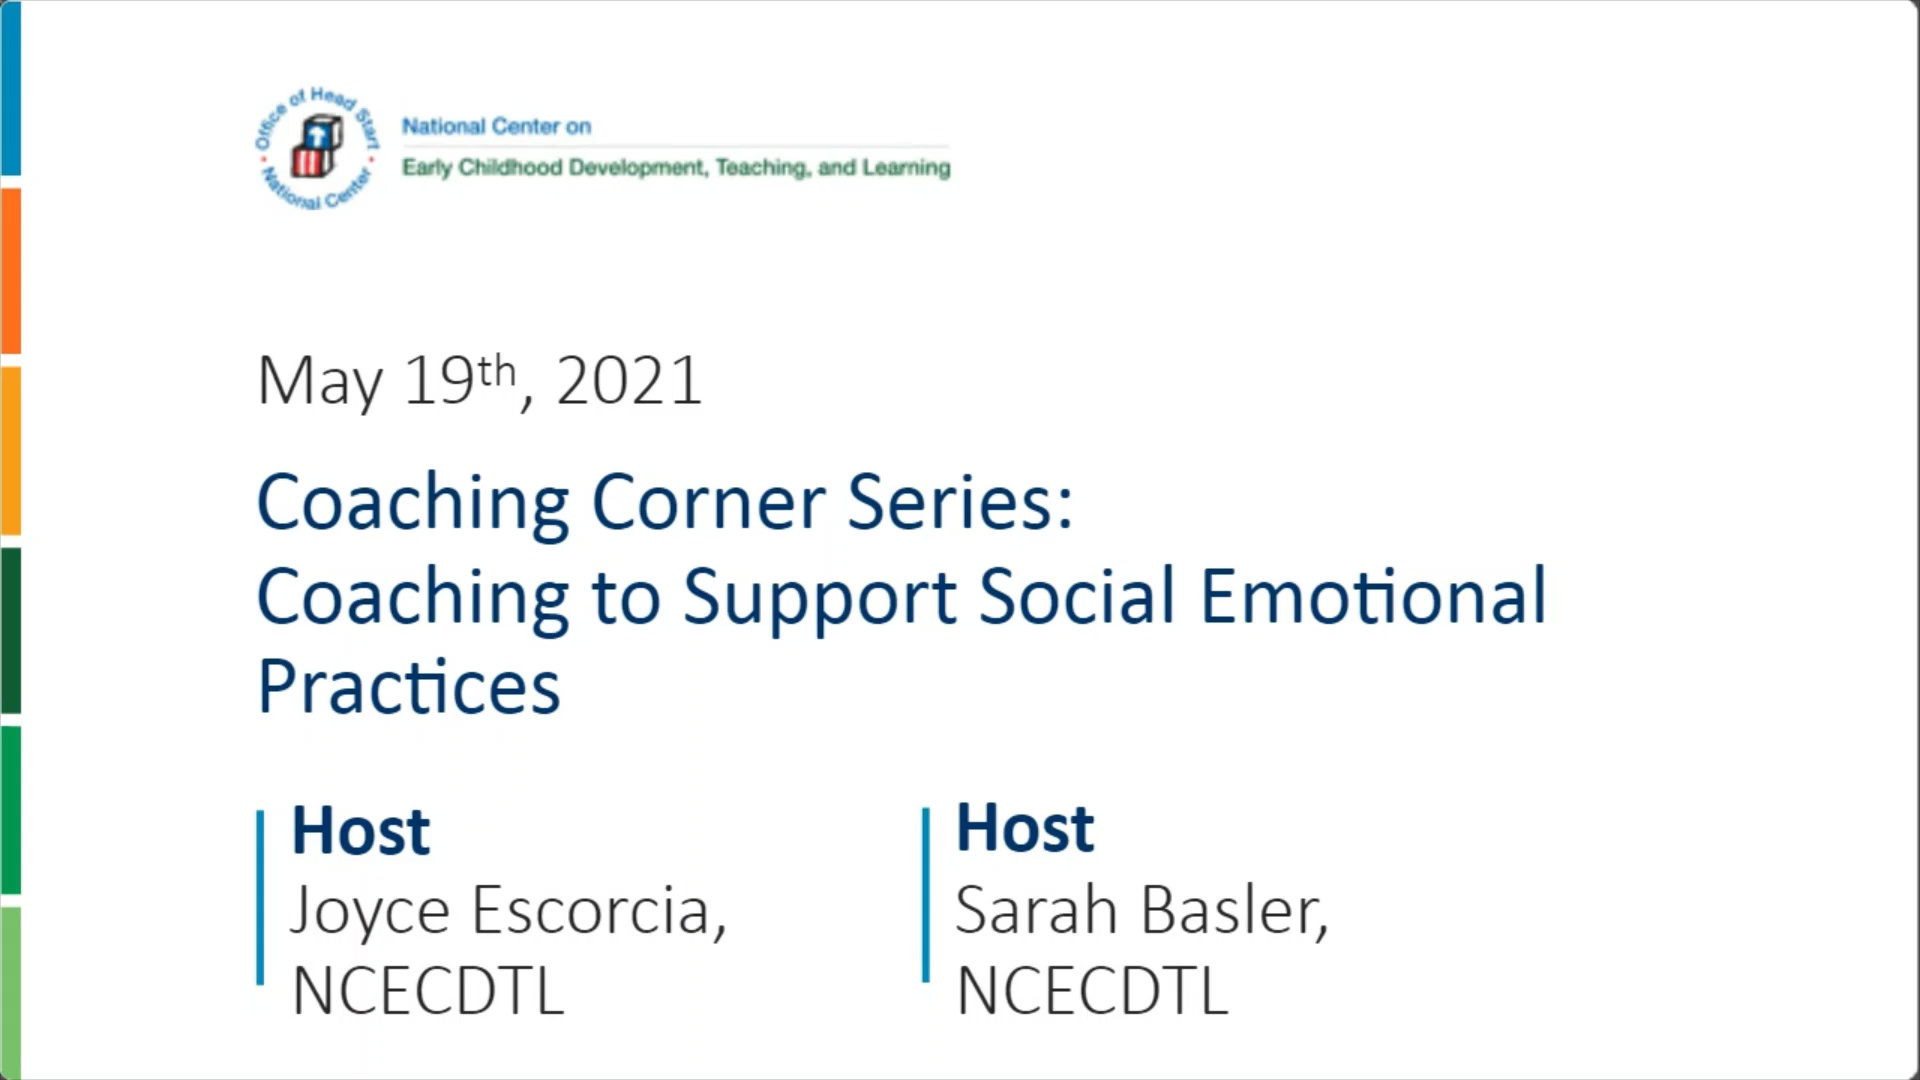 Coaching to Support Social and Emotional Practices